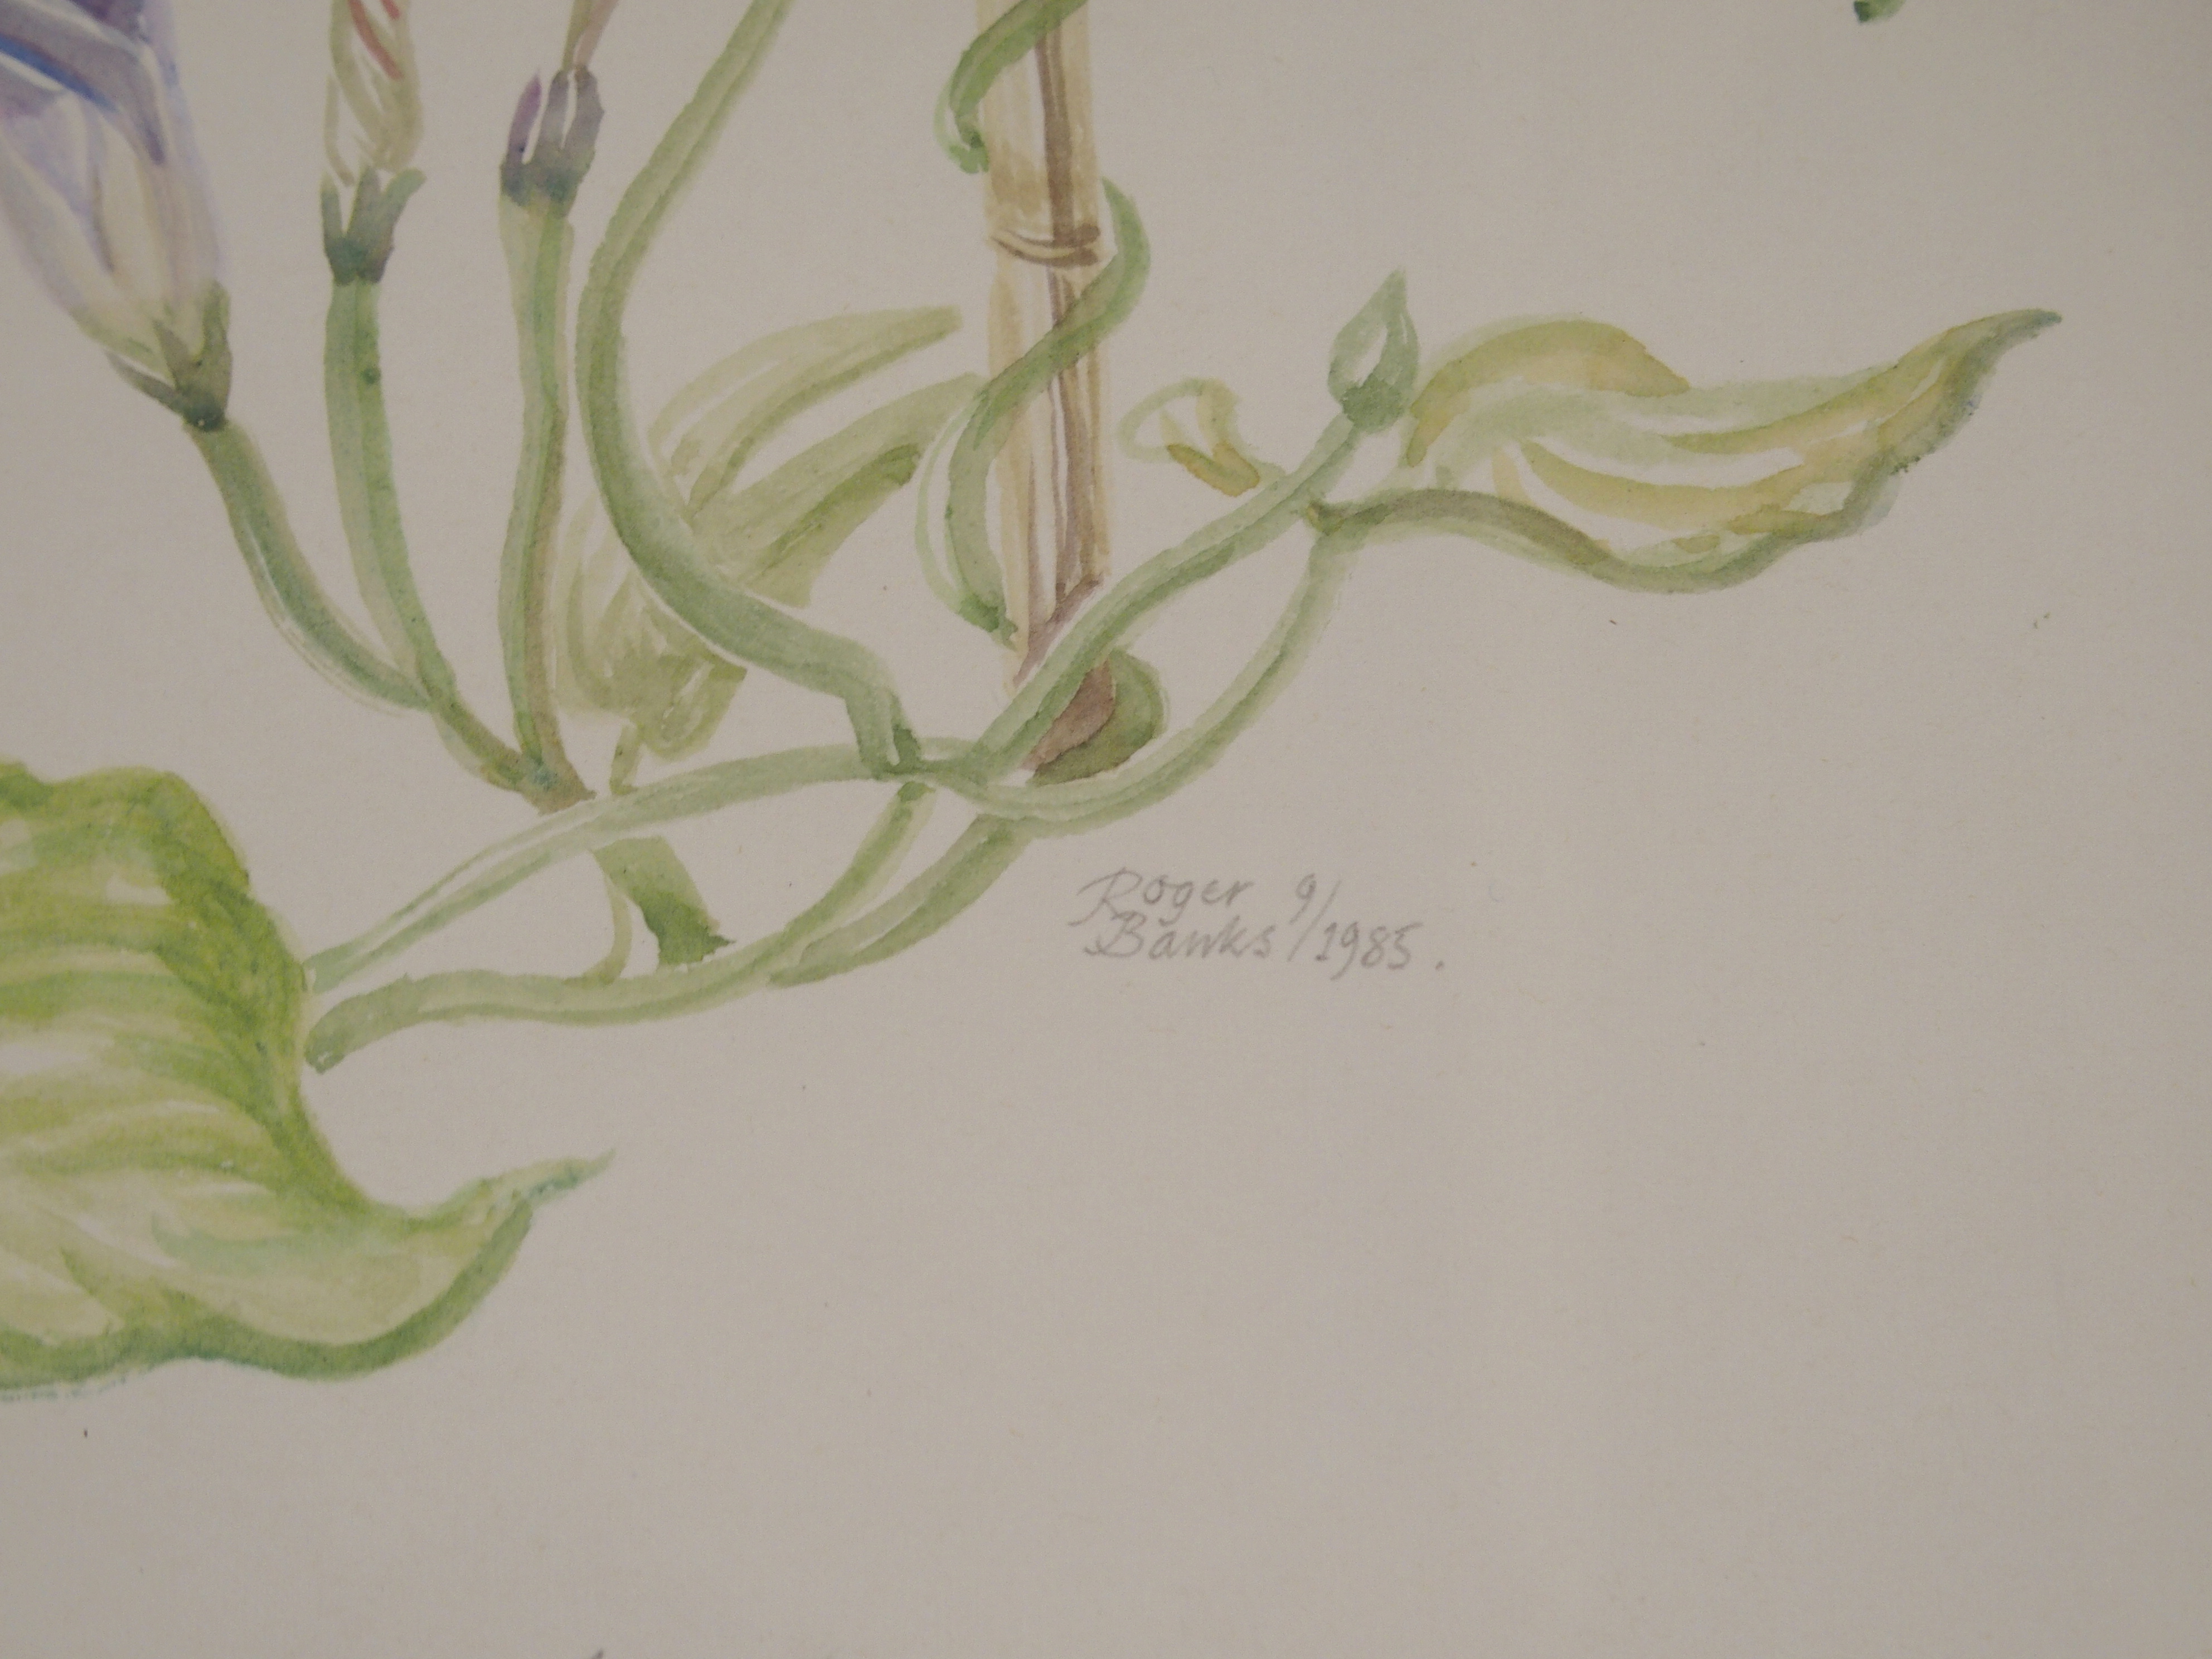 •ROGER BANKS (SCOTTISH 1929-2008) MORNING GLORY watercolour, signed, inscribed and dated, 1985, 52 x - Image 4 of 5